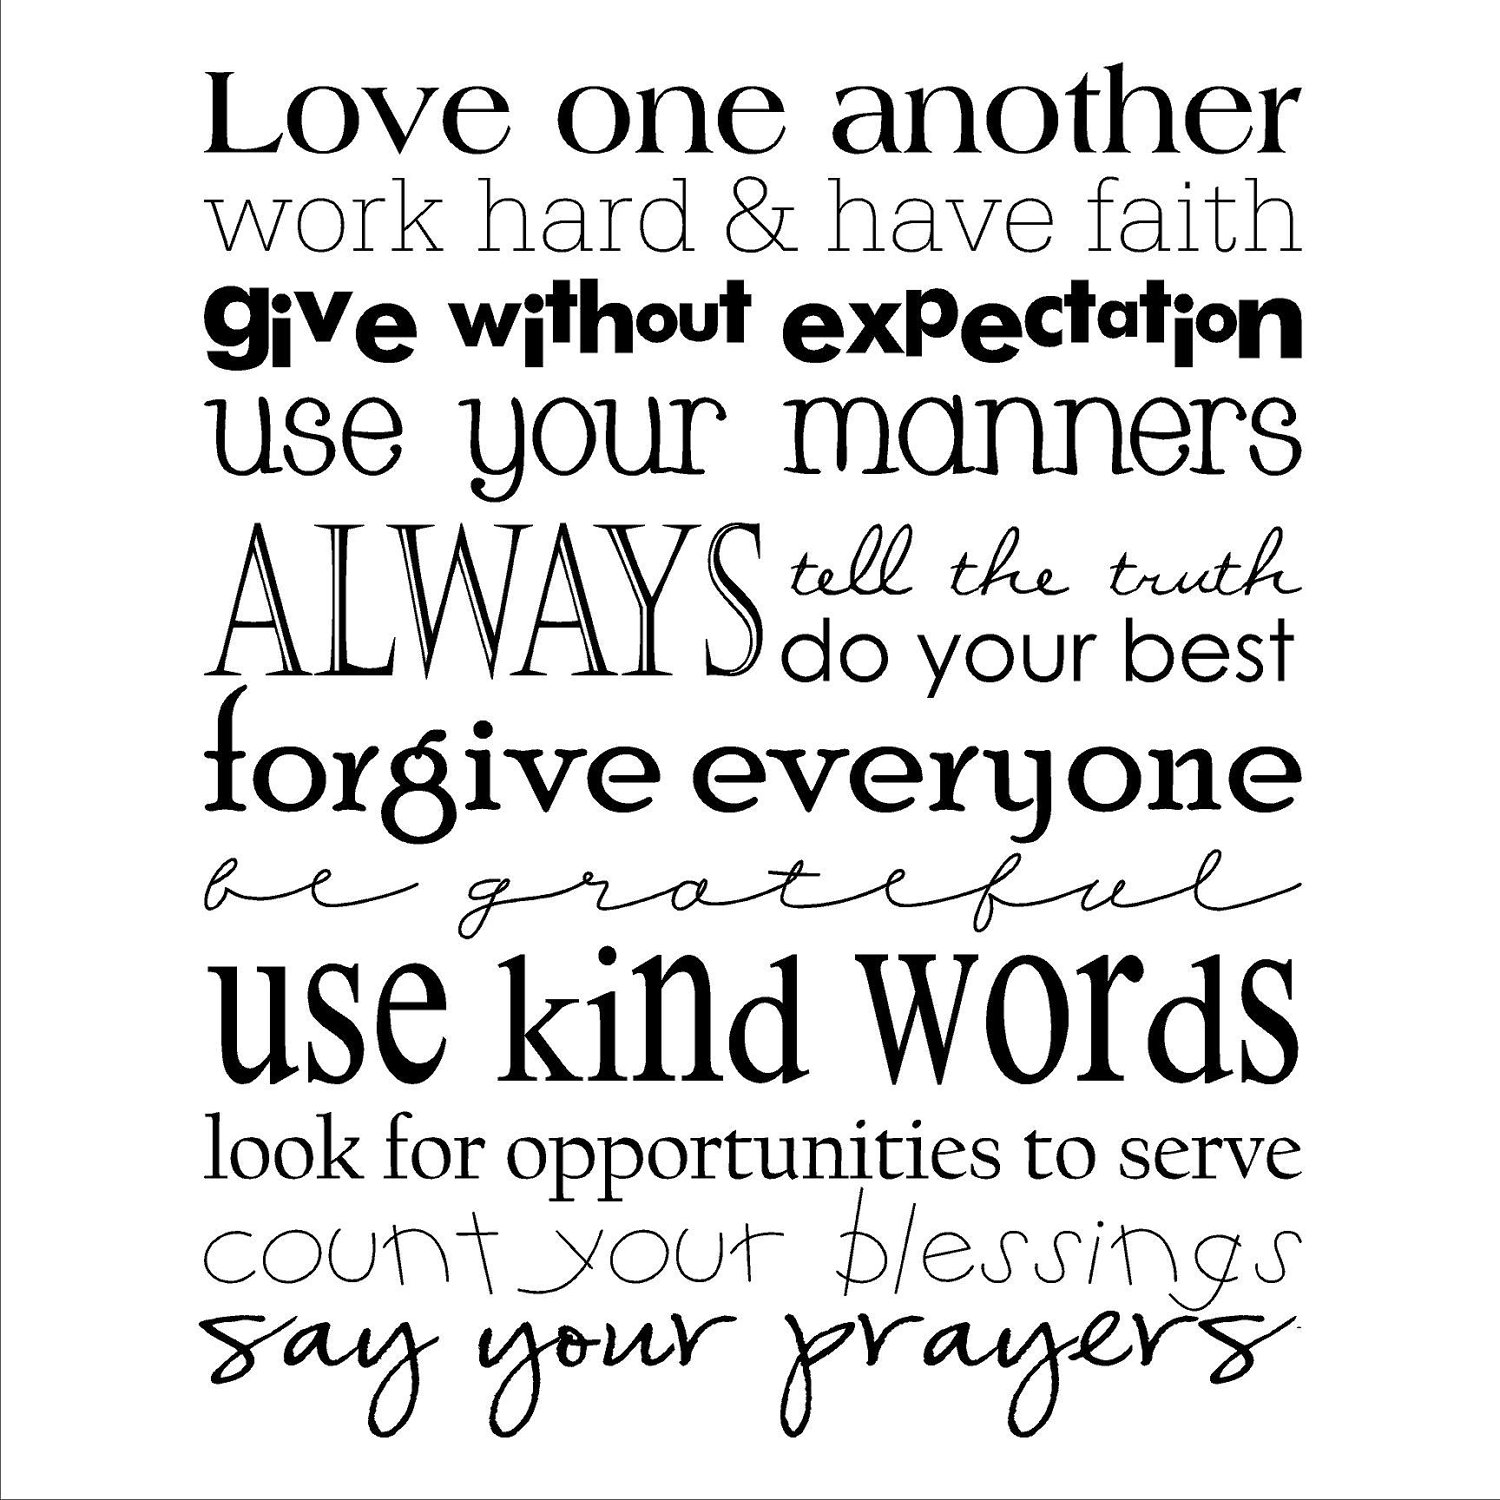 Quotes about Love One Another (7 quotes)